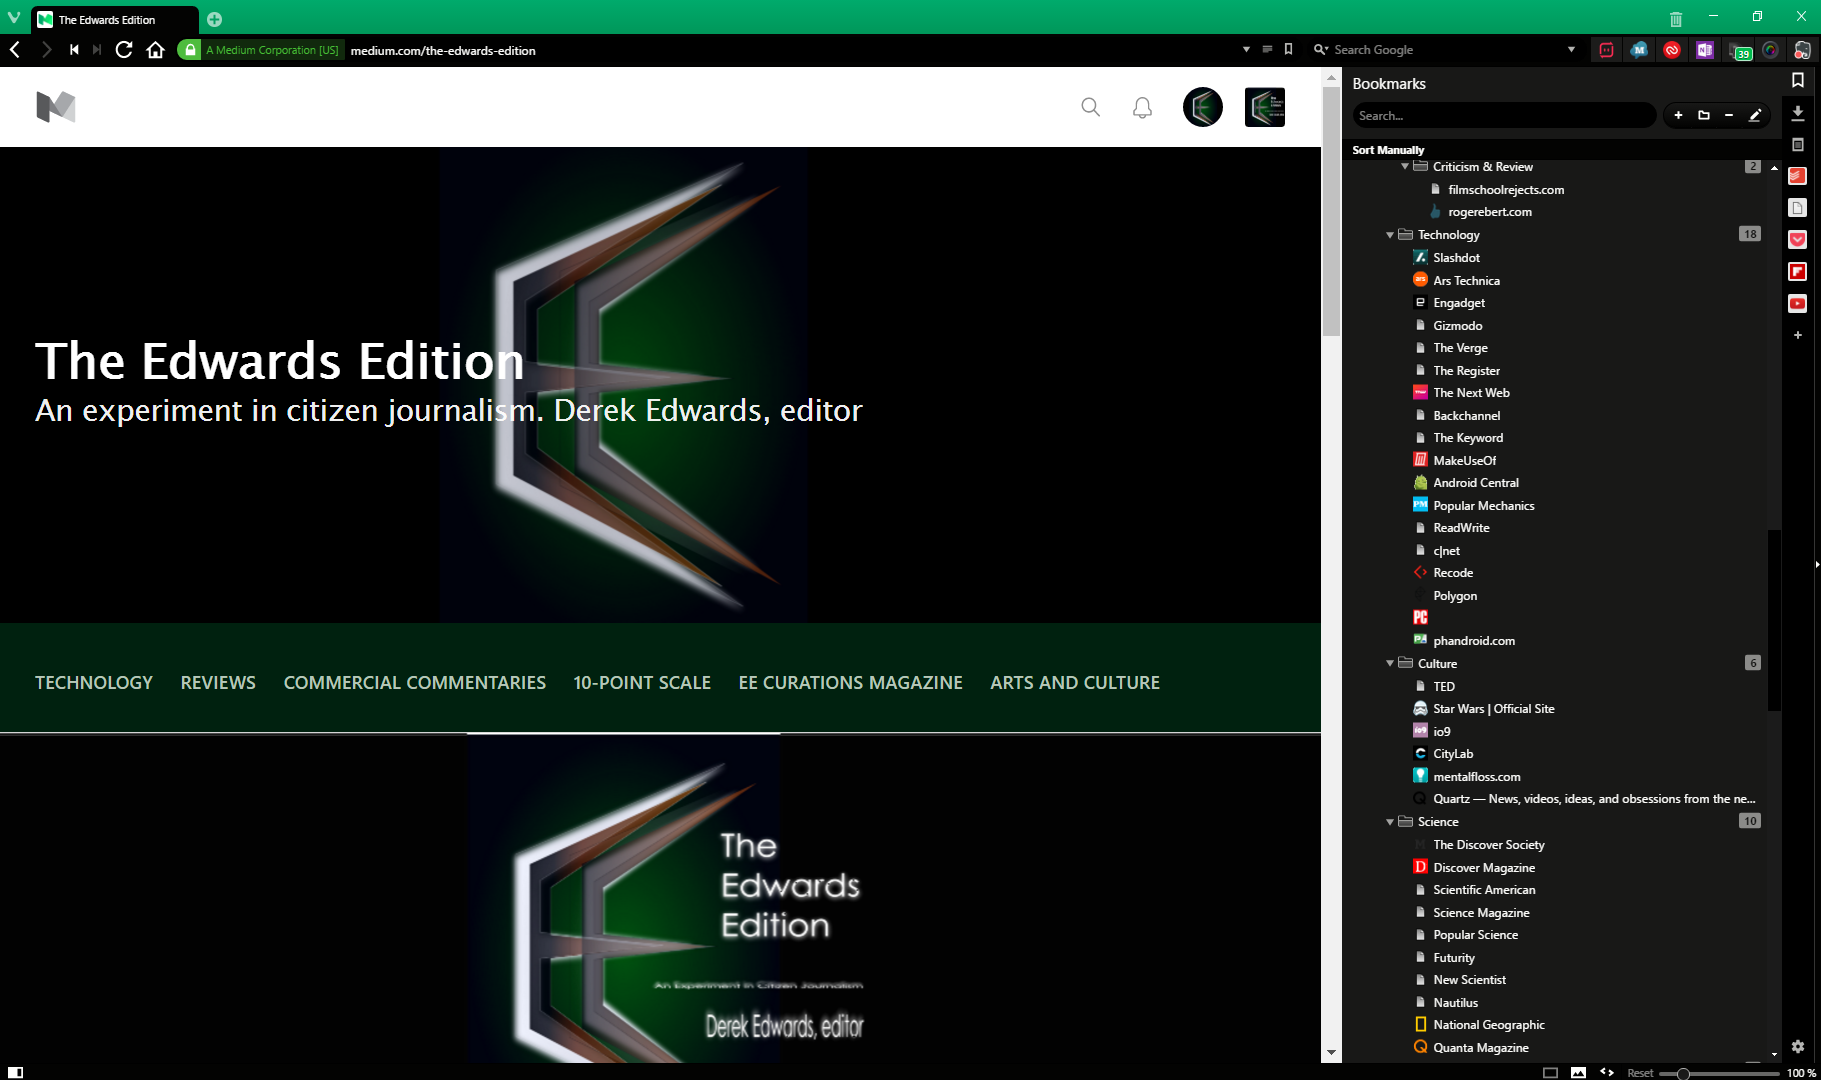 Review: Vivaldi Browser for Windows - The Edwards Edition